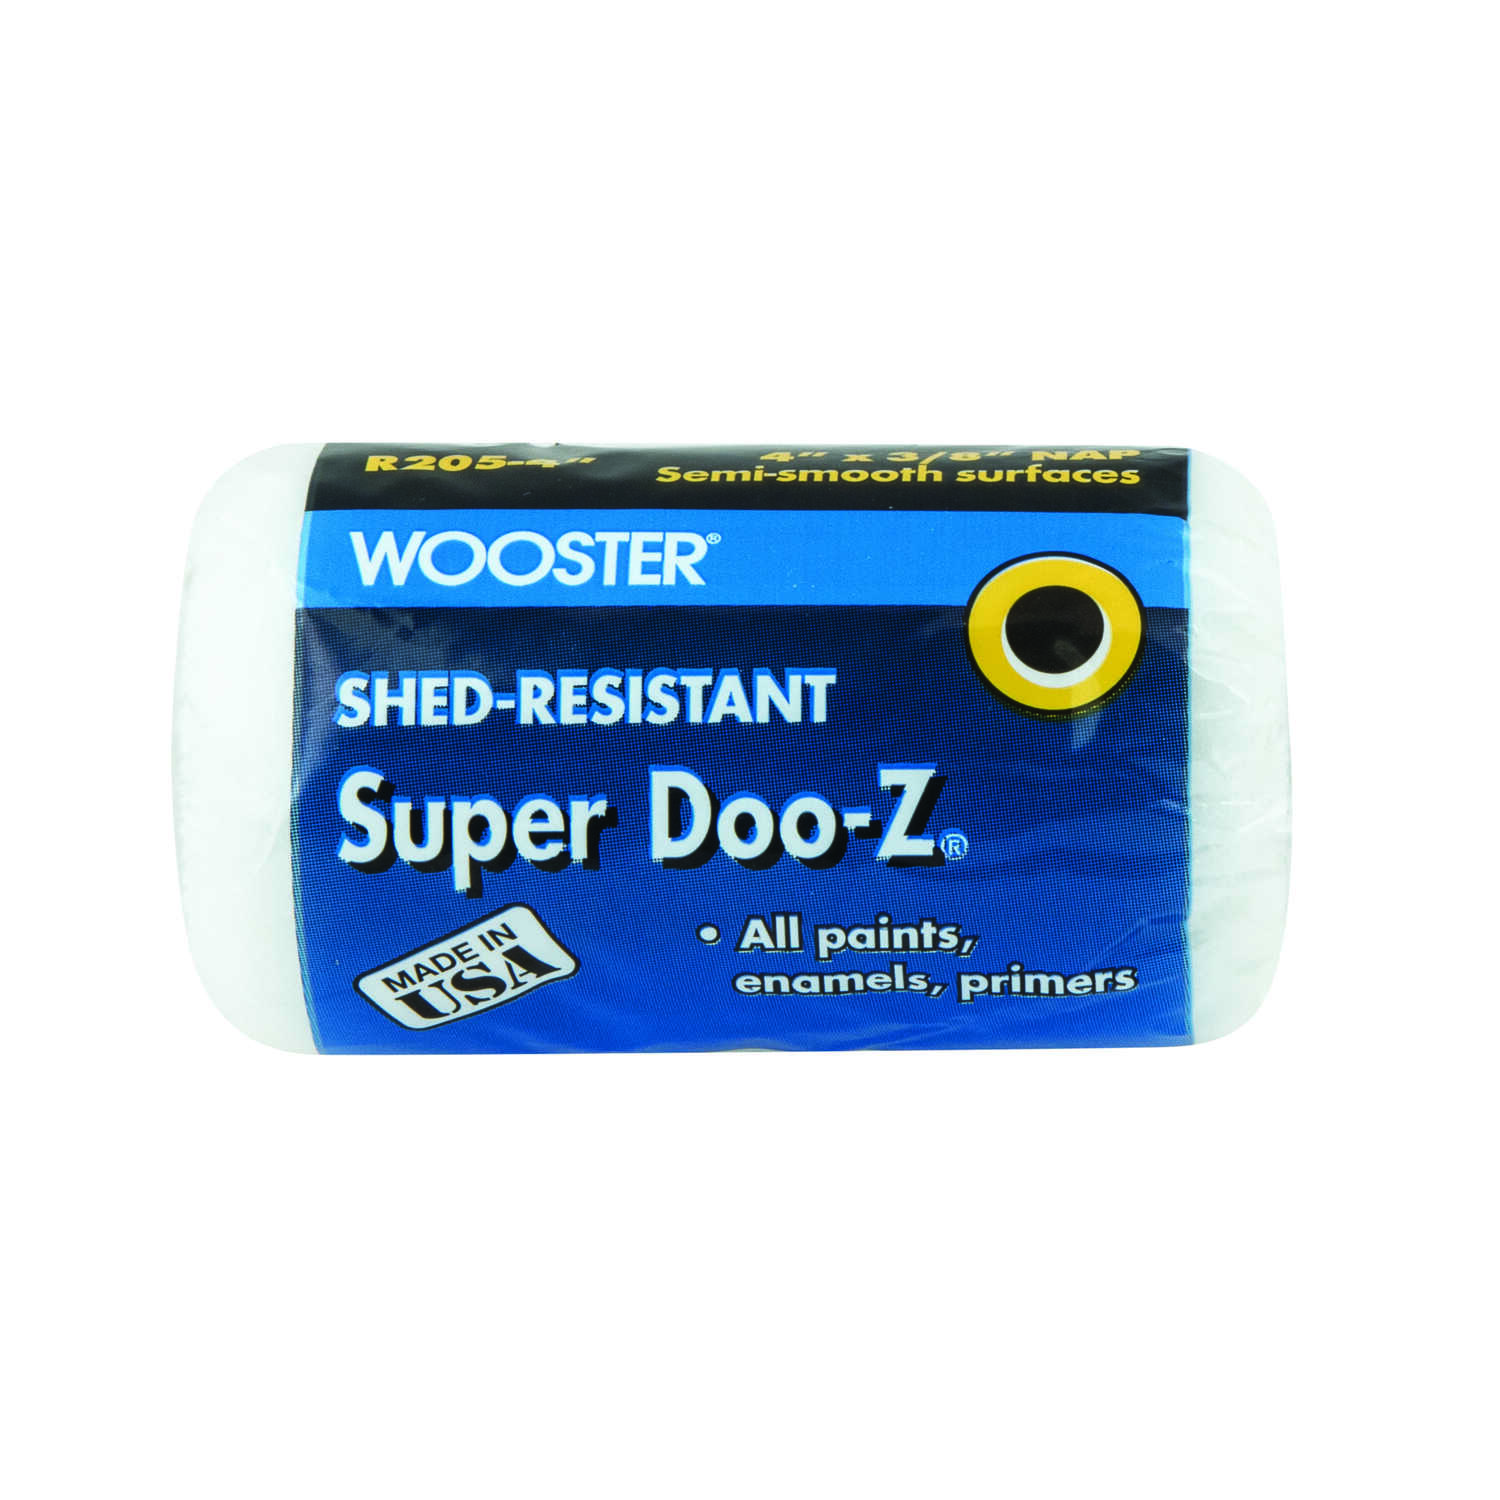 Wooster  Super Doo-Z  Fabric  3/8 in.  x 4 in. W Paint Roller Cover  1 pk For Semi-Smooth Surfaces